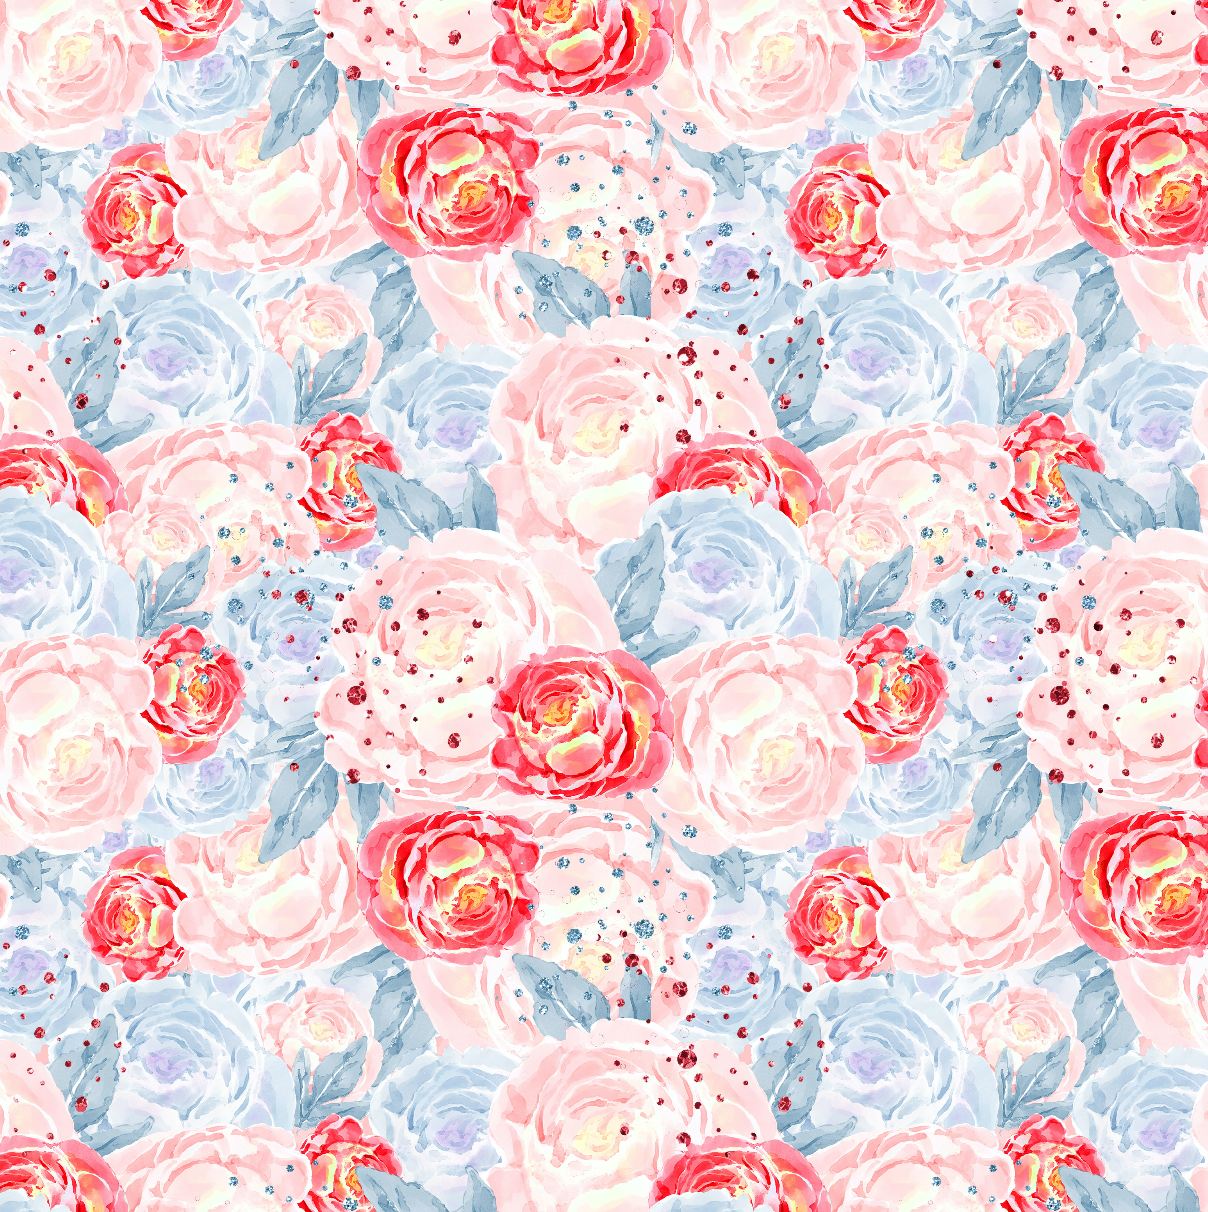 PRE ORDER - Mary Poppins Pink Floral - Digital Fabric Print